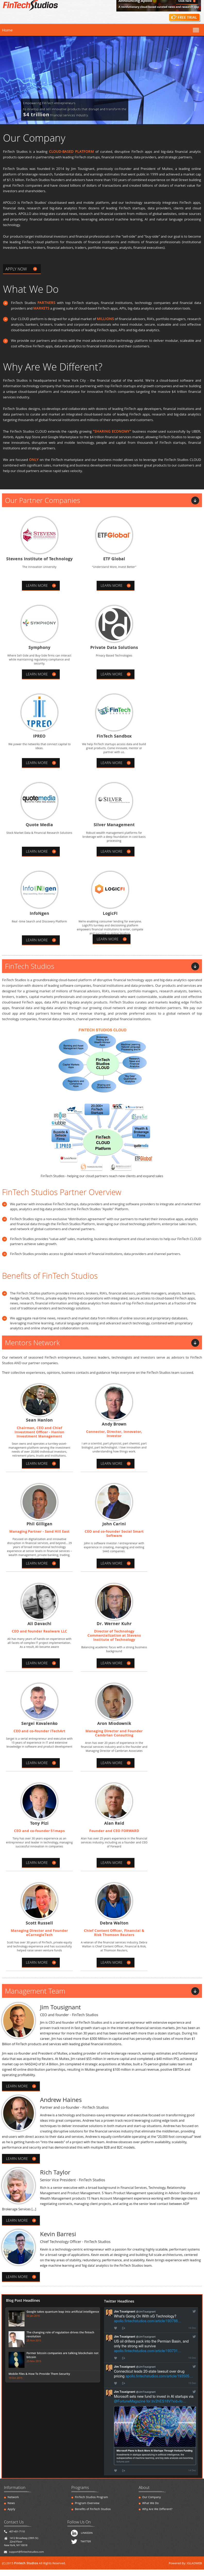 Fintech Studios Competitors, Revenue and Employees - Owler Company